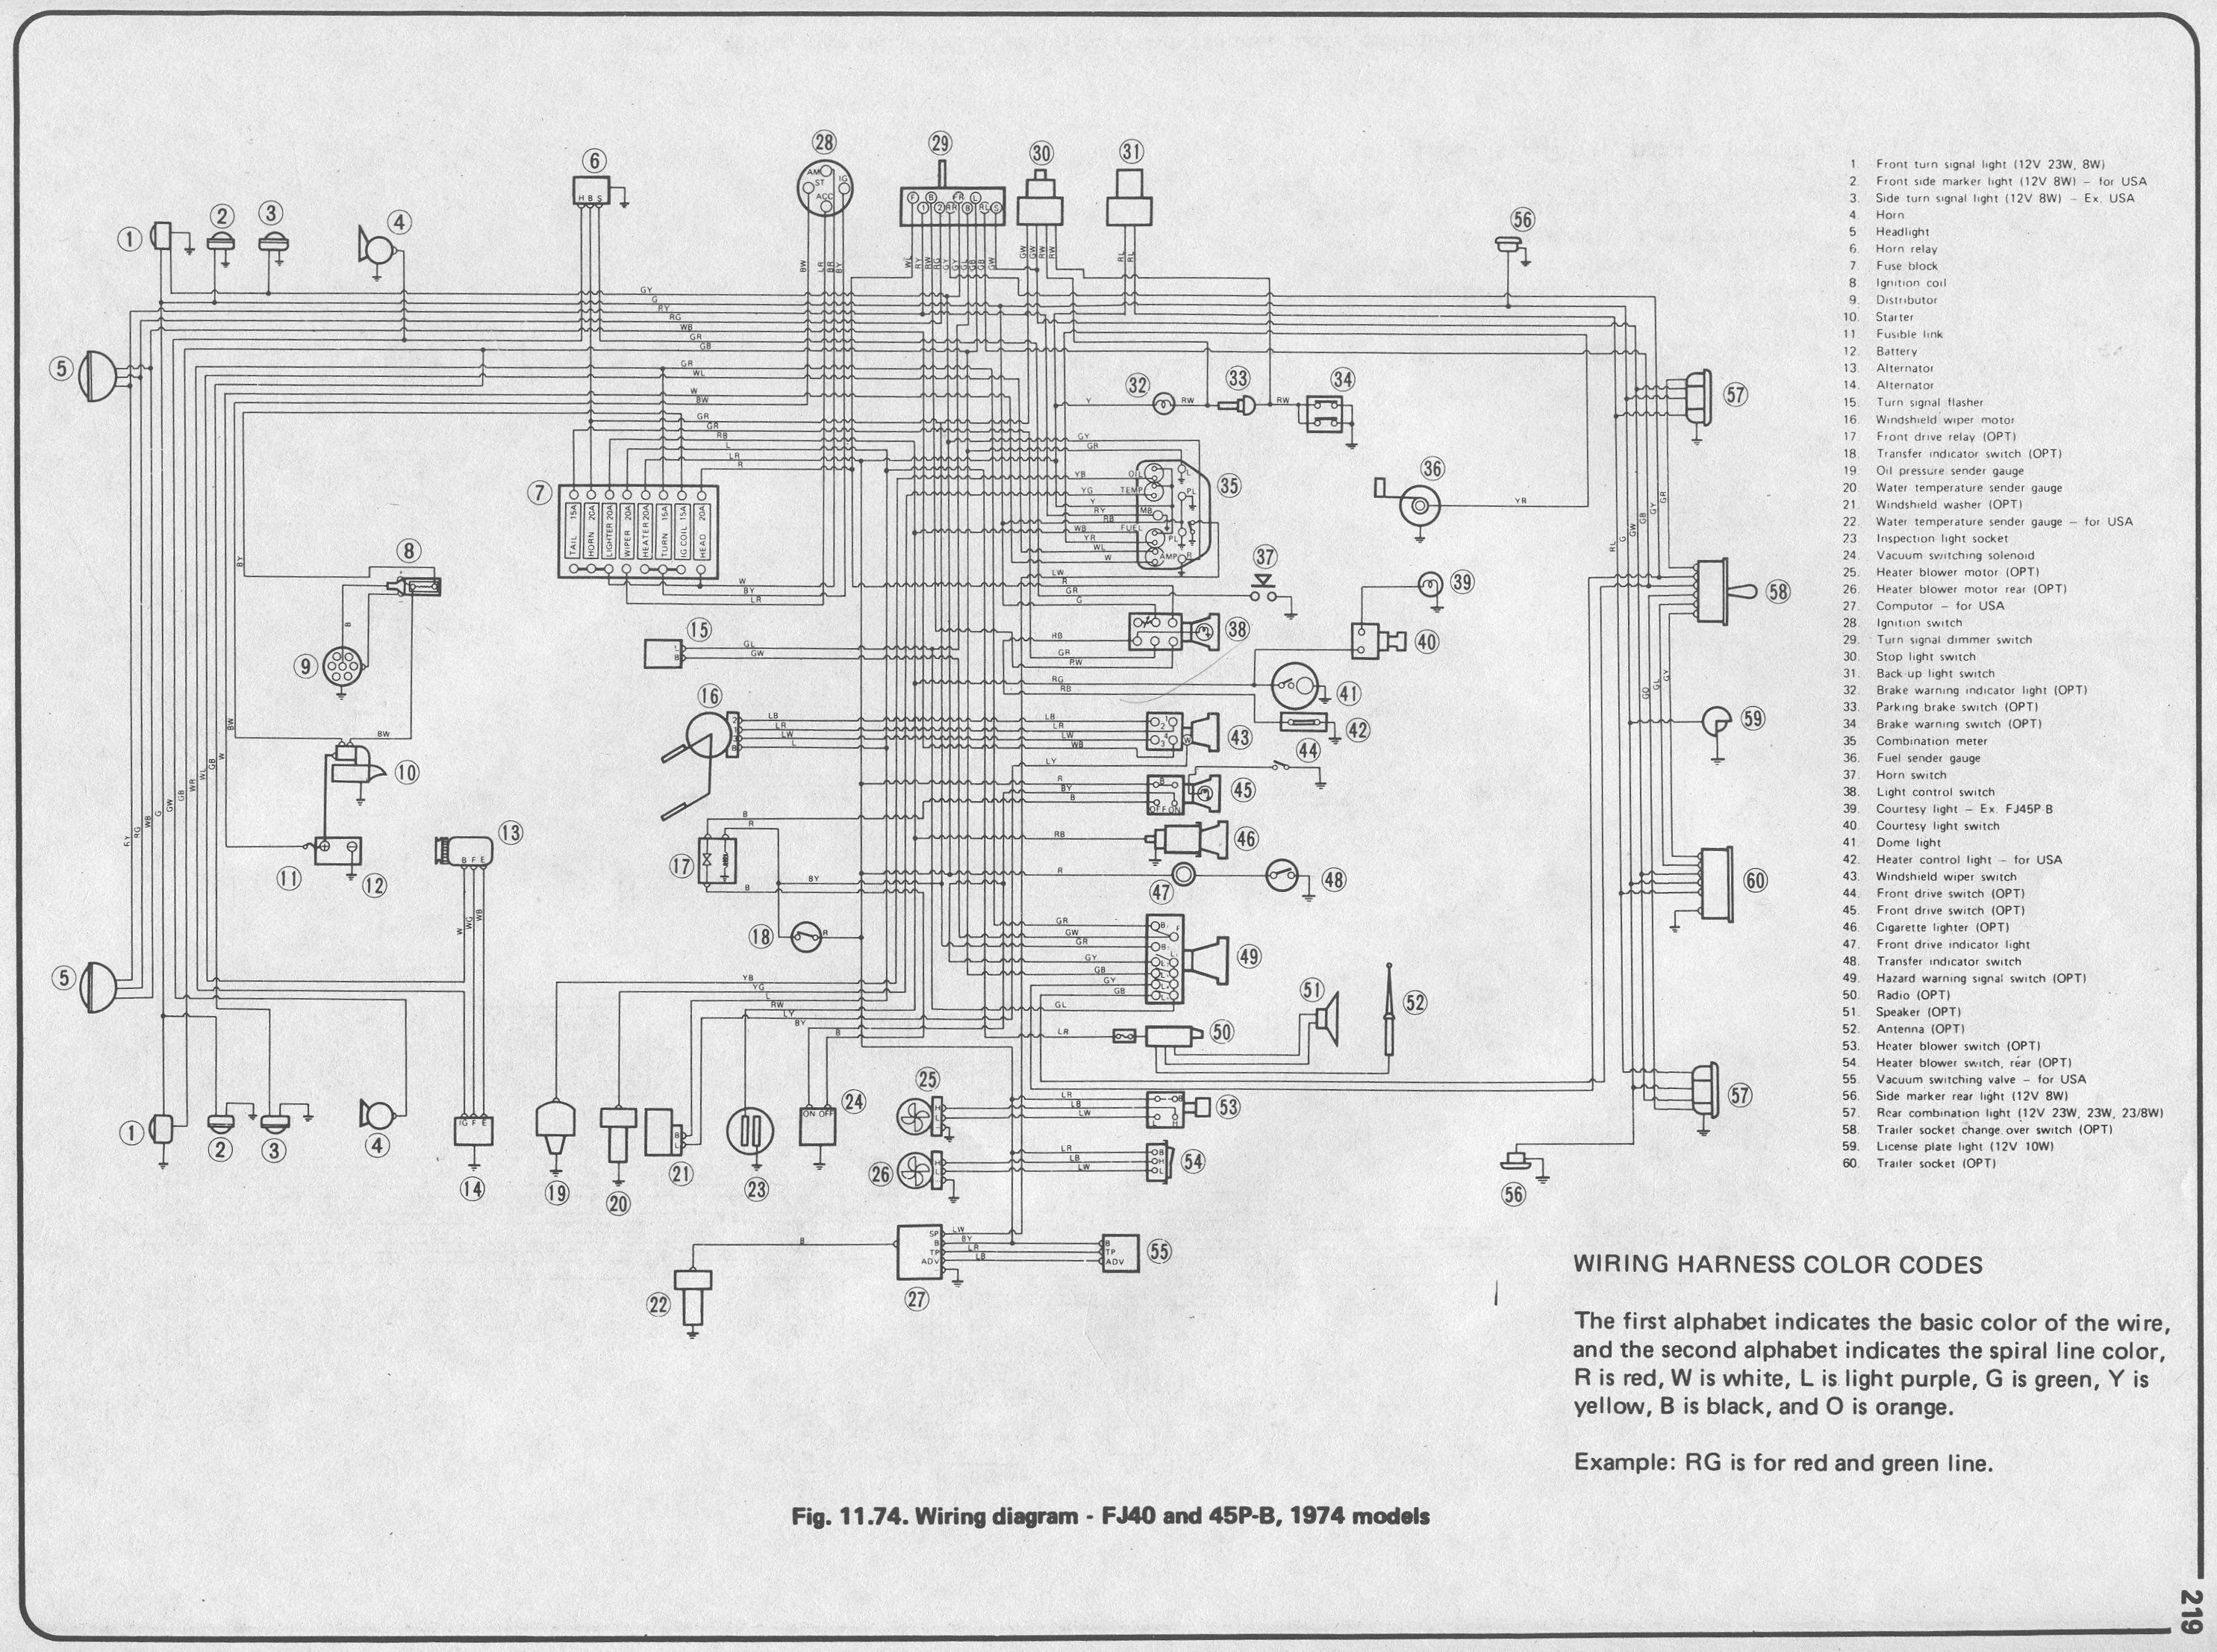 medium resolution of h131 wexco wiper motor wiring diagram wiring diagrams for your carfj40 wiper motor wiring diagram h131